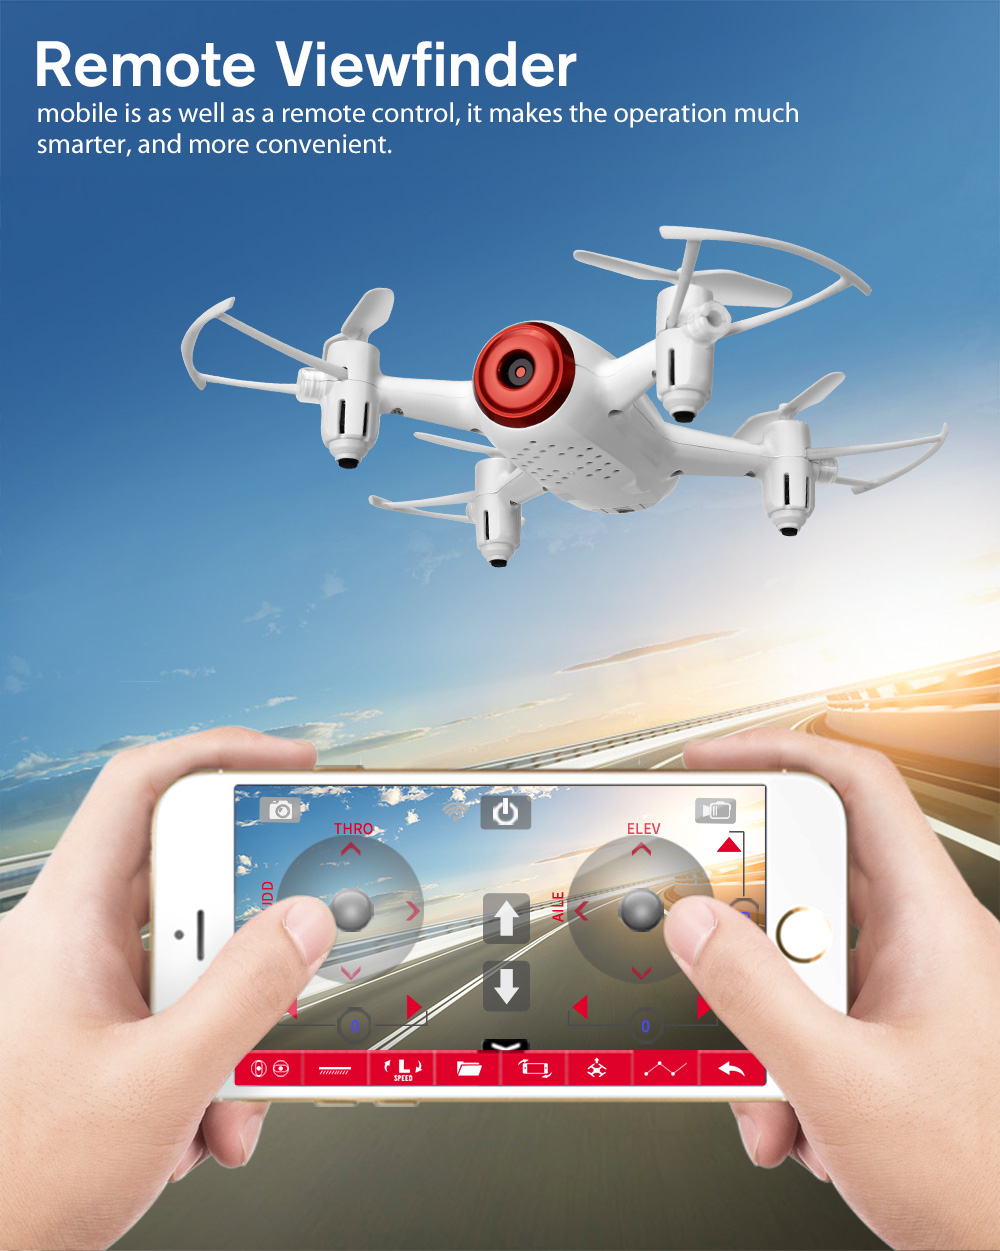 SYMA x22w Wifi FPV System Pocket Drone HD Camera Headless Mode Radio controlled Dron with Flight Plan and App Control White